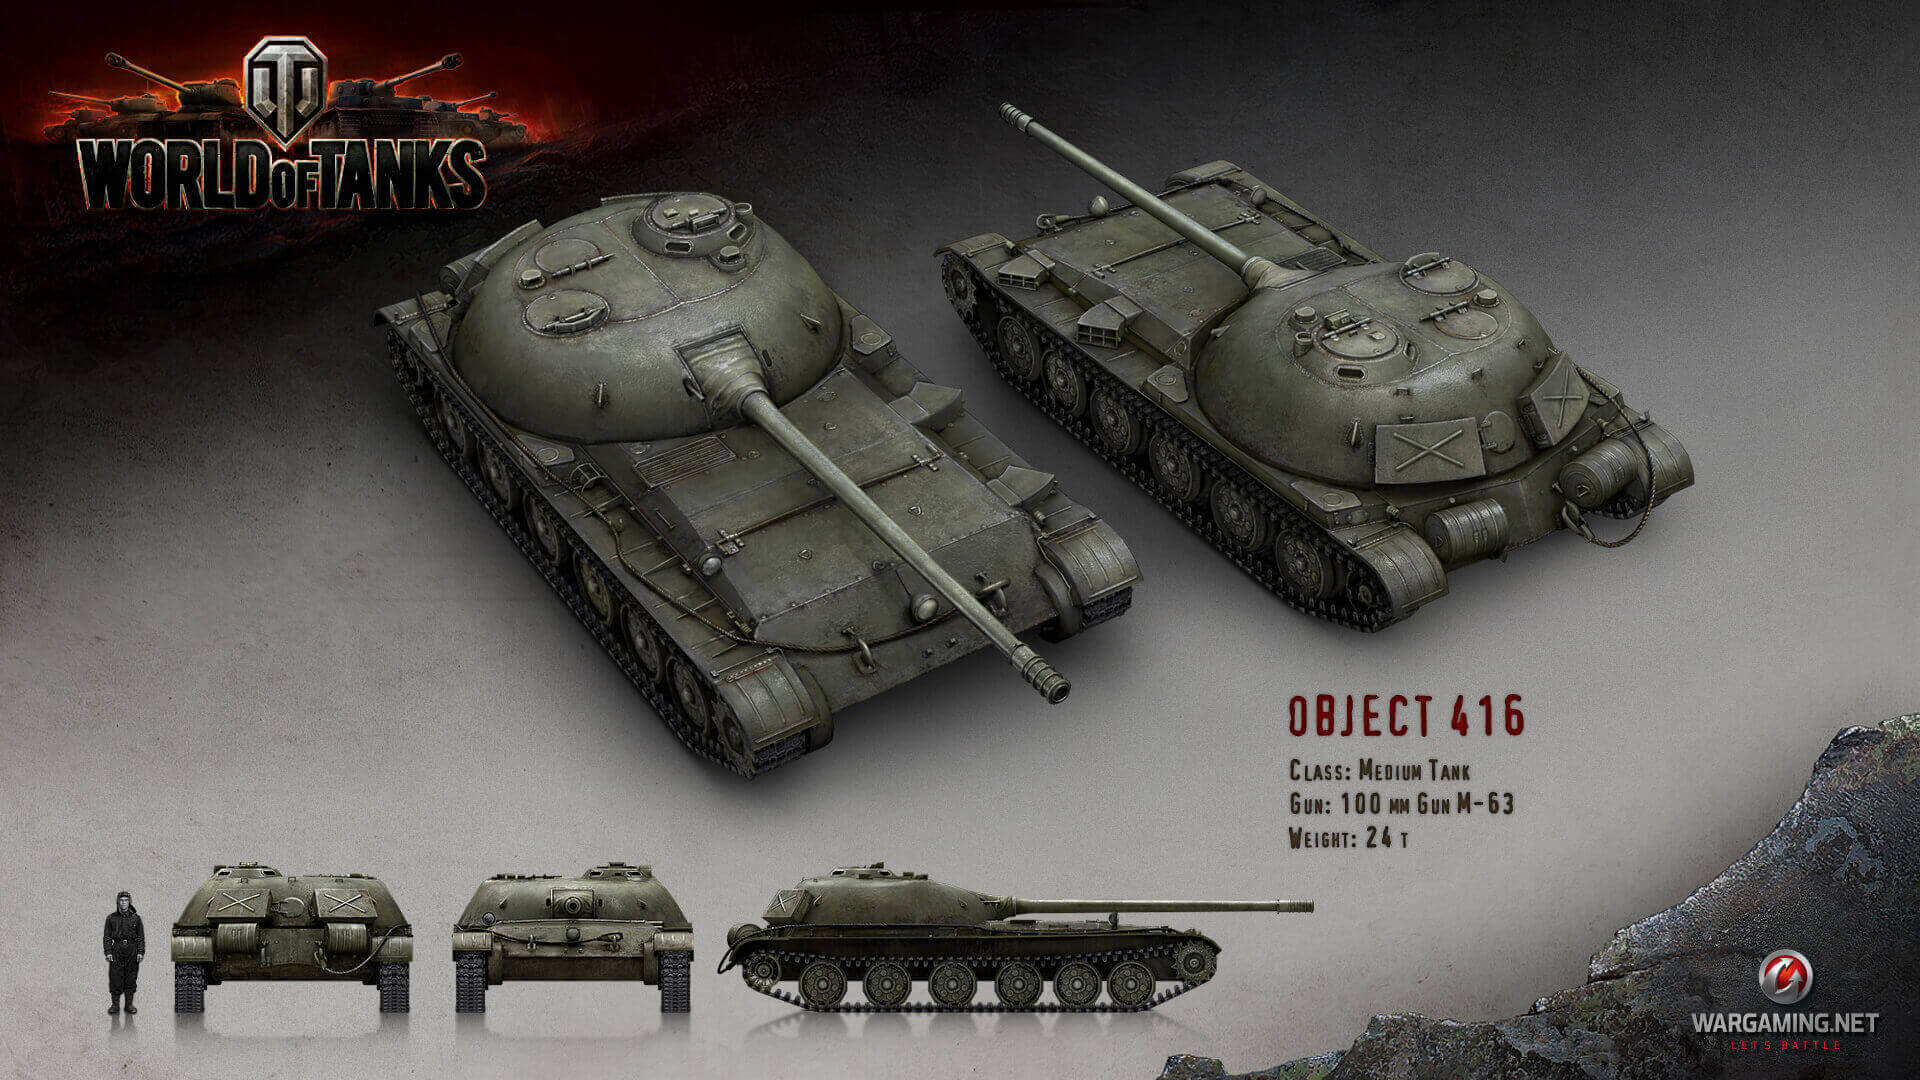 Object 416 | モデル紹介 | Worl...